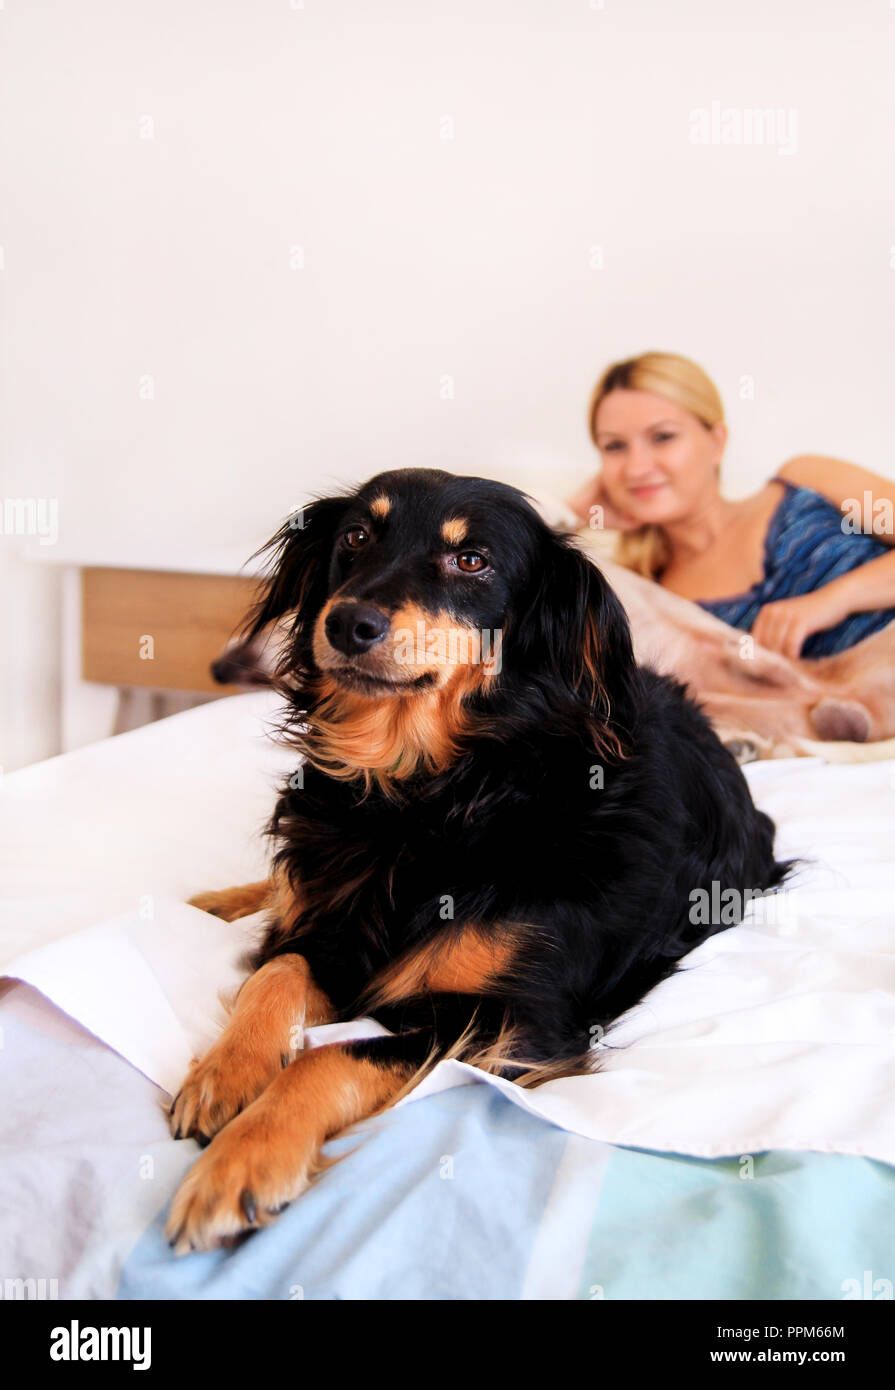 A woman with her dogs at home, relaxing in bedroom. Young beautiful girl plays in bed with her dogs. Yellow labrador retriever climbed into and mixed. - Stock Image